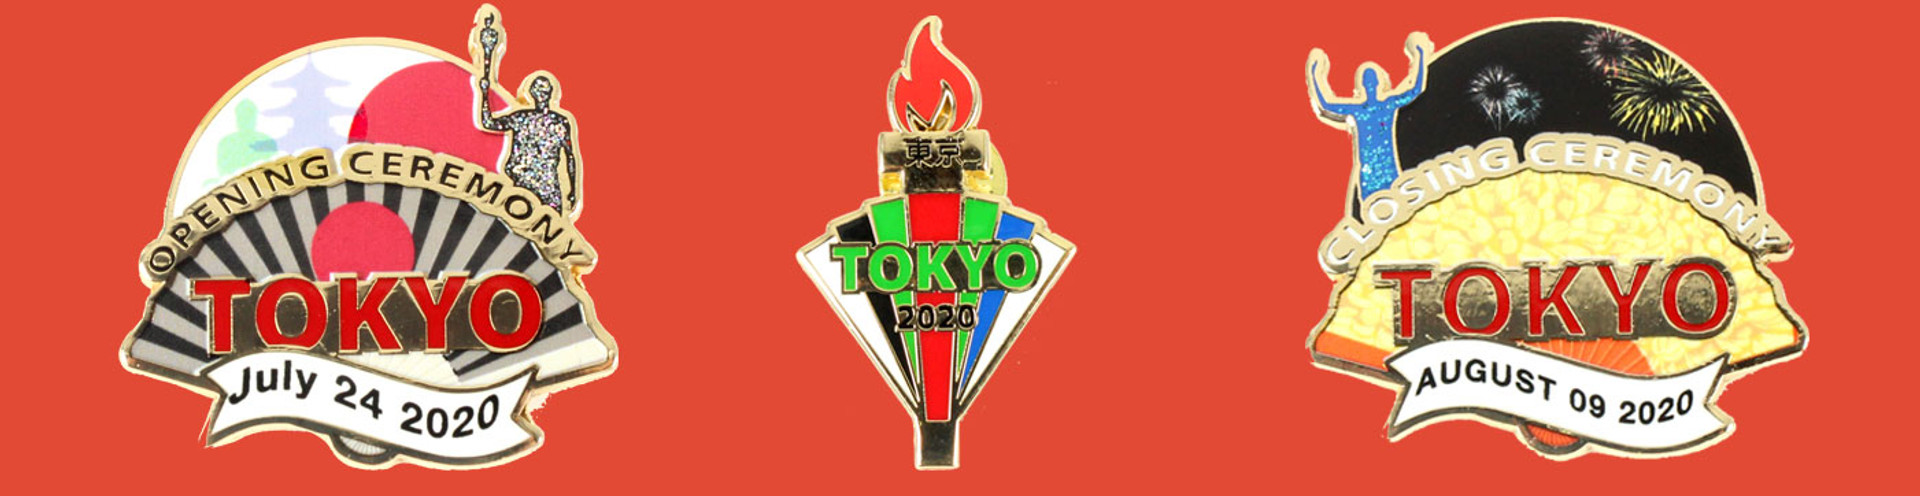 Tokyo Olympic Pins 2020